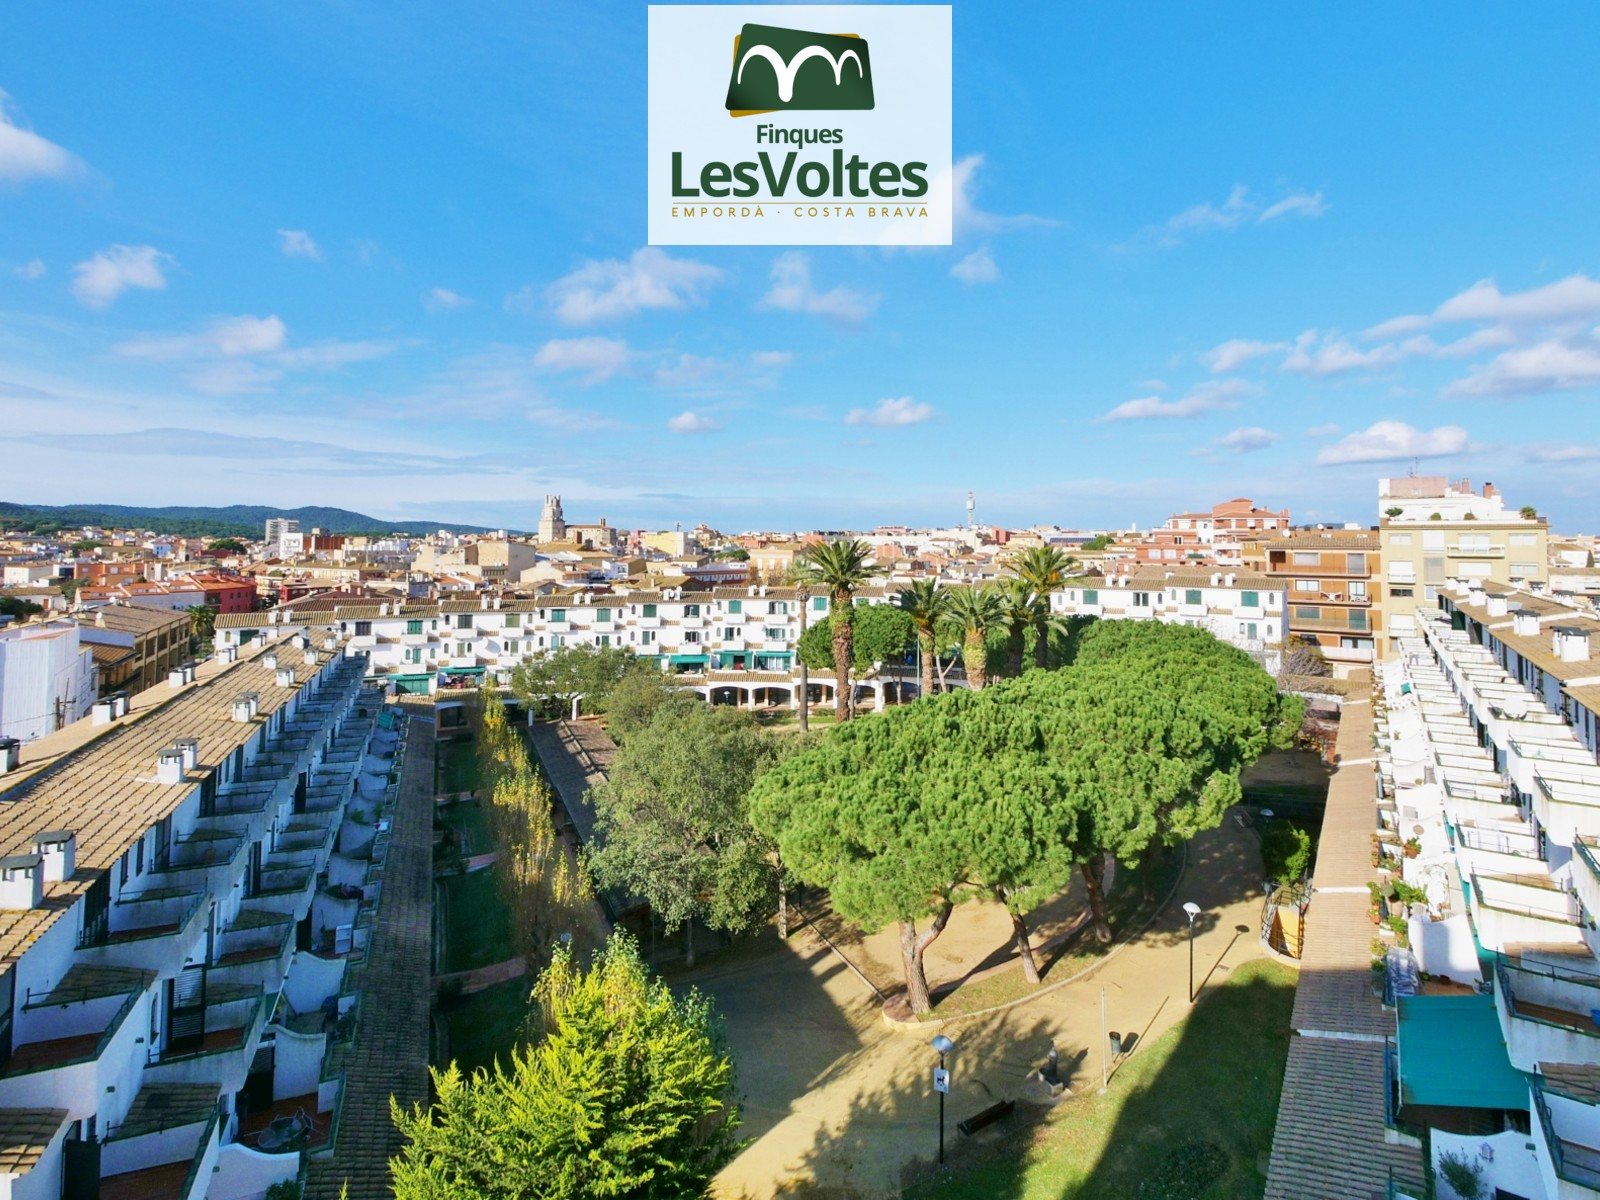 SPECTACULAR 4 BEDROOM DUPLEX PENTHOUSE AND LARGE TERRACE FOR SALE IN PALAFRUGELL.